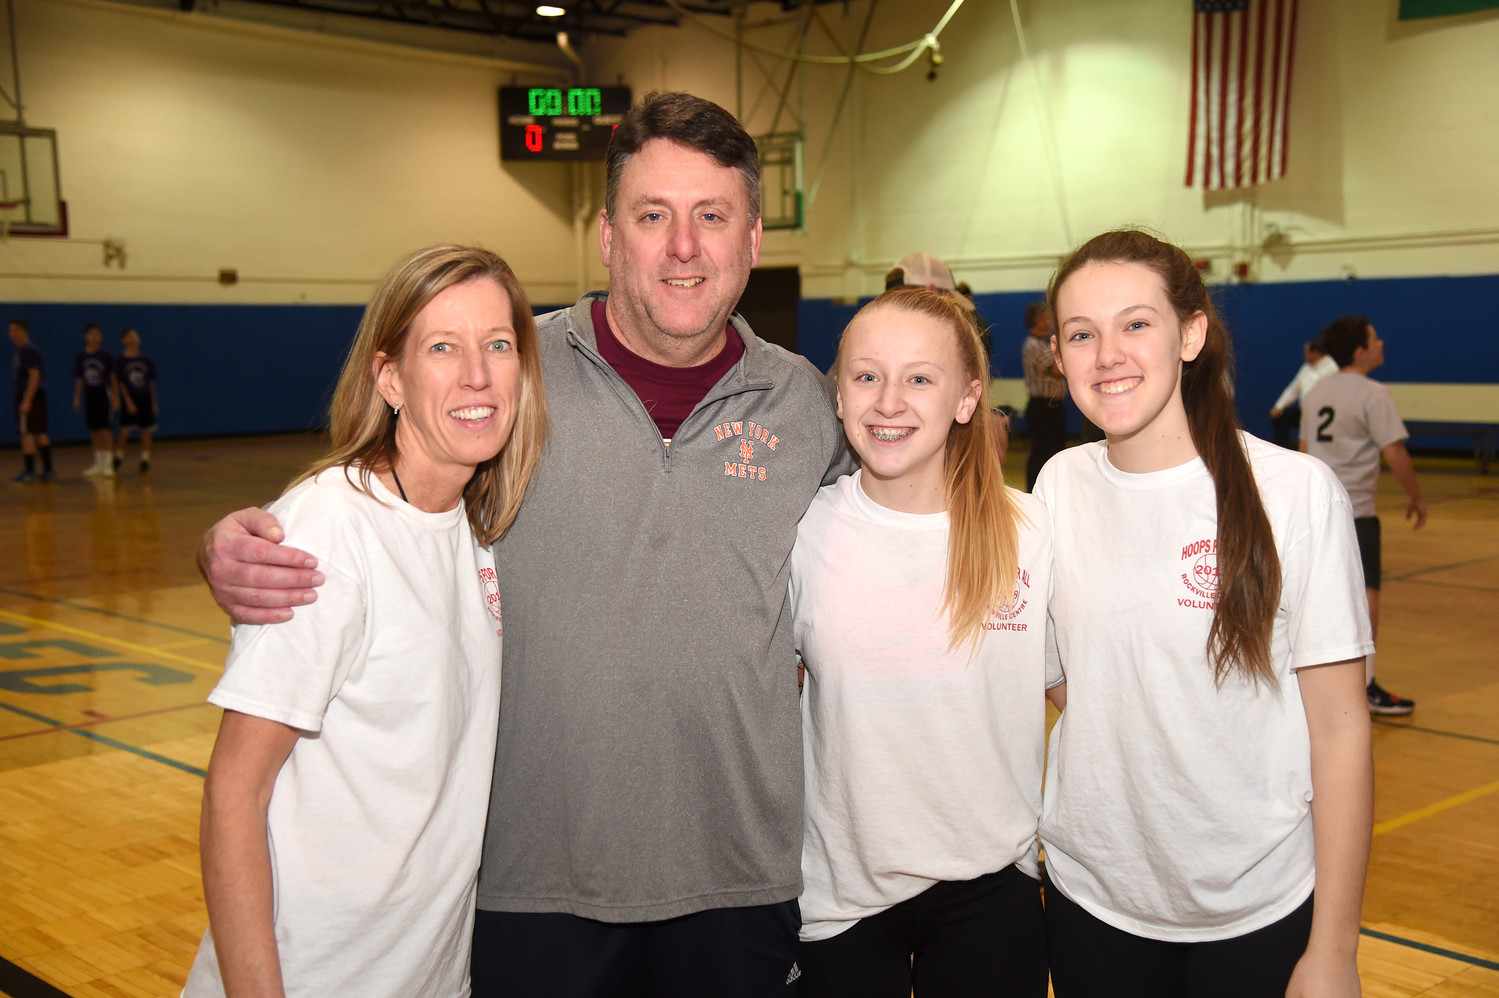 Hoops For All Organizer Patty Basile, left, with her husband, Mike, and daughters Bridget, 13, and Maggie, 16